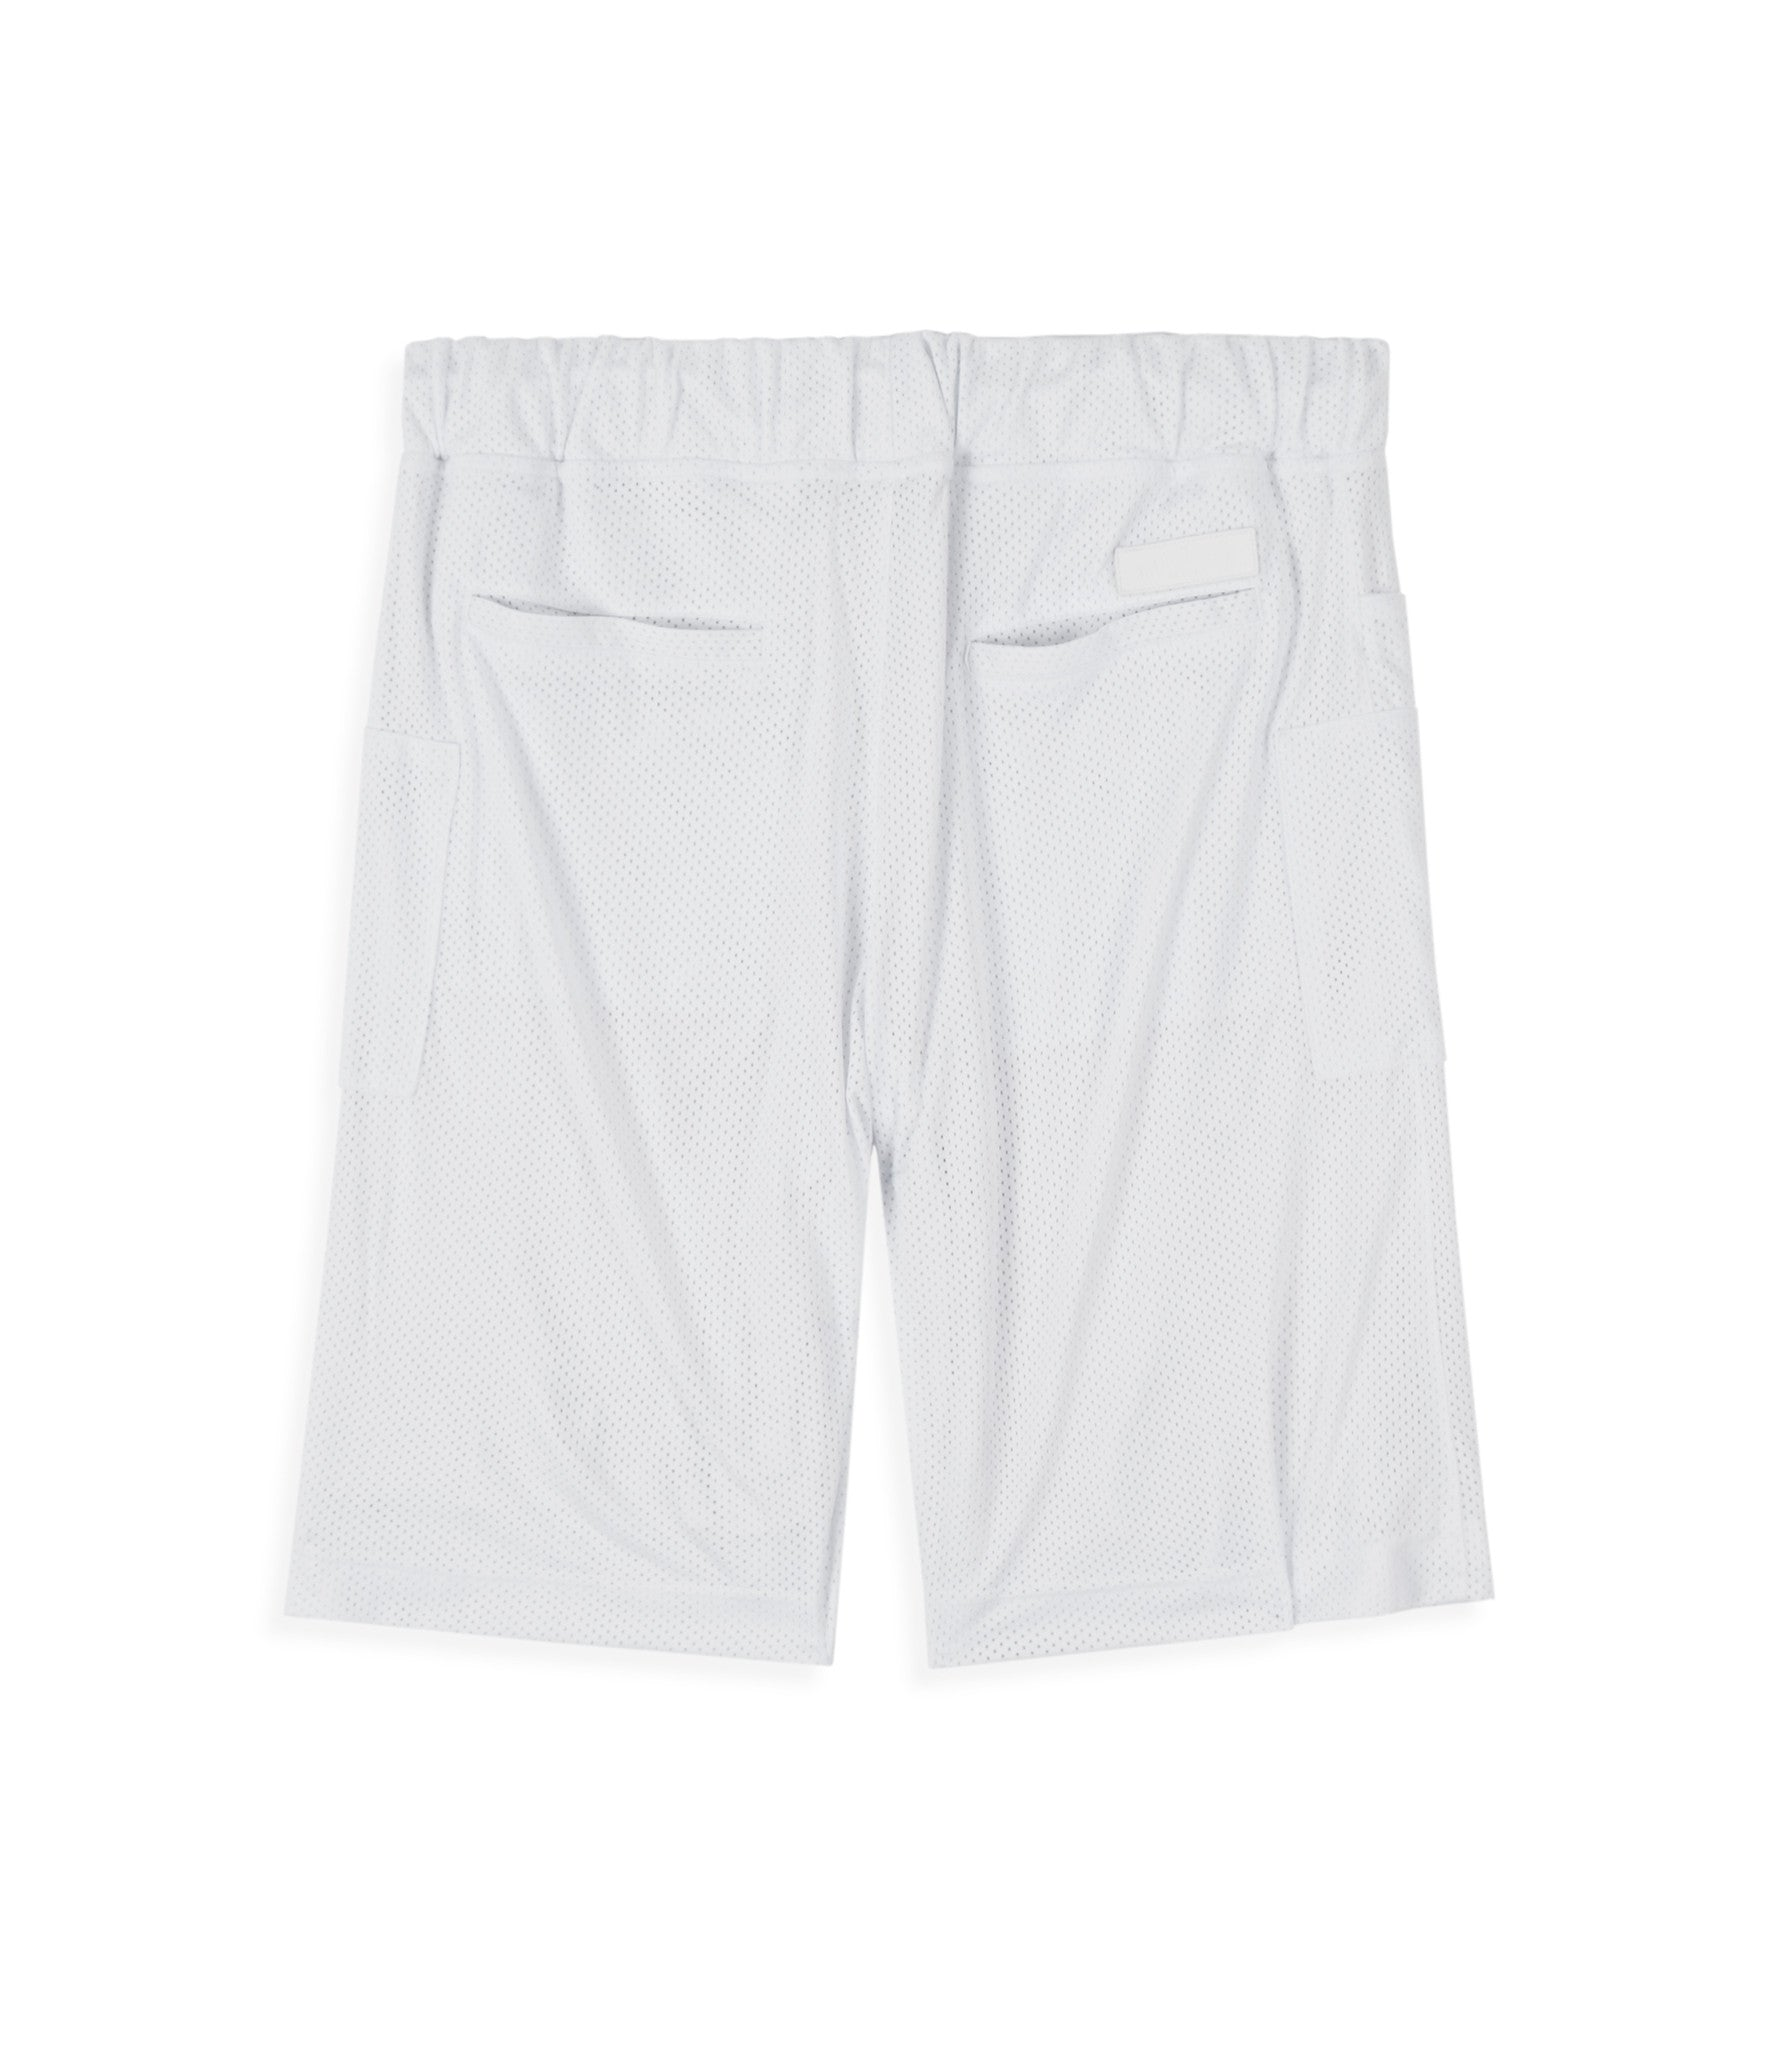 SR283 Utility Airtex Shorts - White - underated london - underatedco - 2